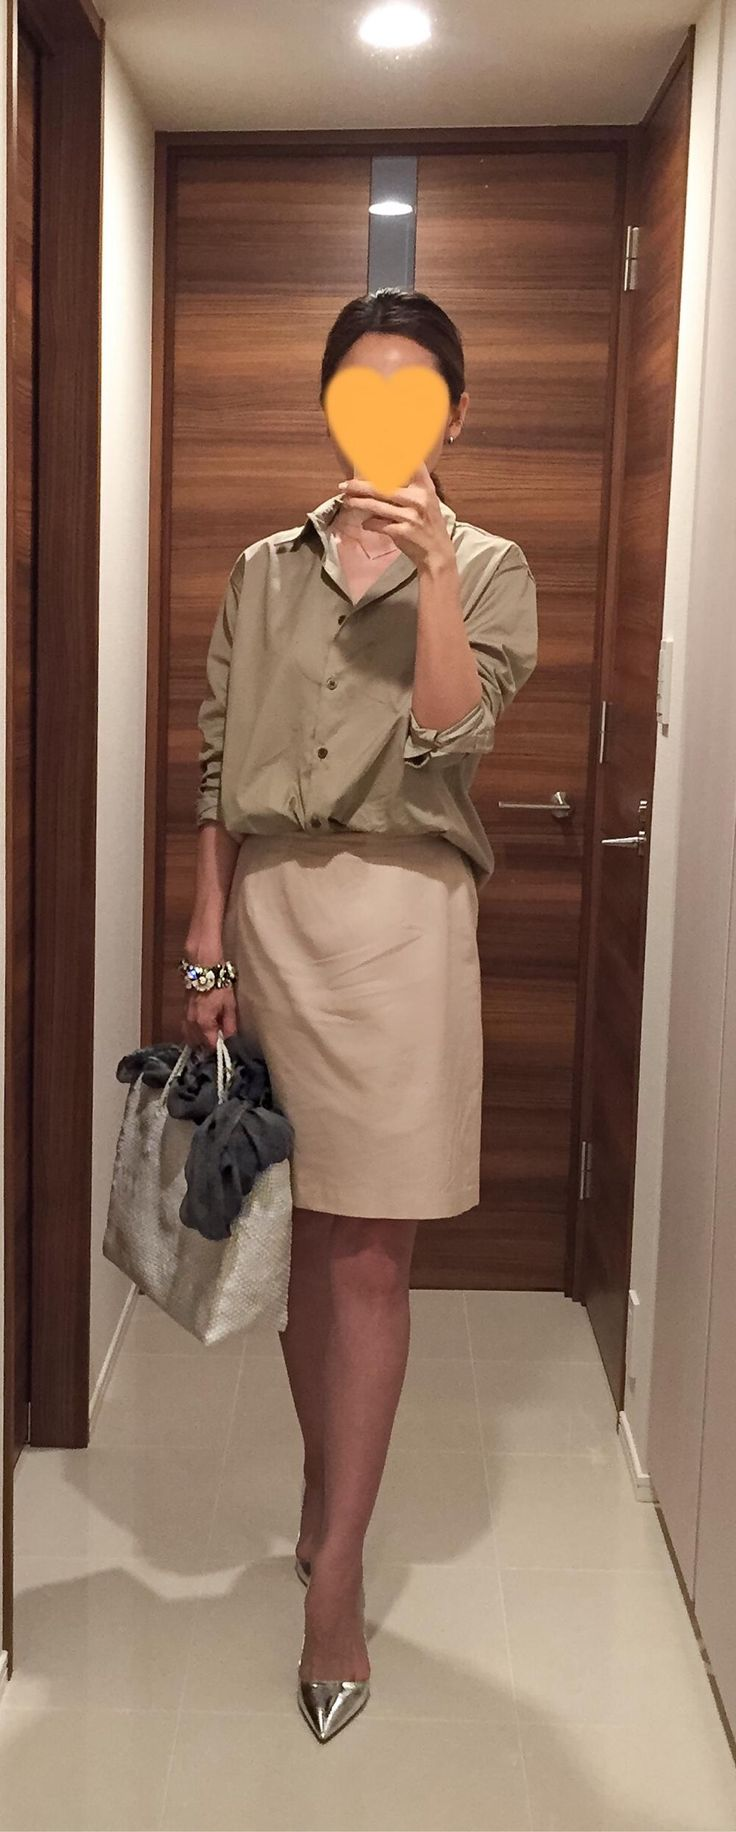 Khaki shirt: martinique, Pink skirt: Tomorrowland, White bag: la kagu, Silver heels: Jimmy Choo